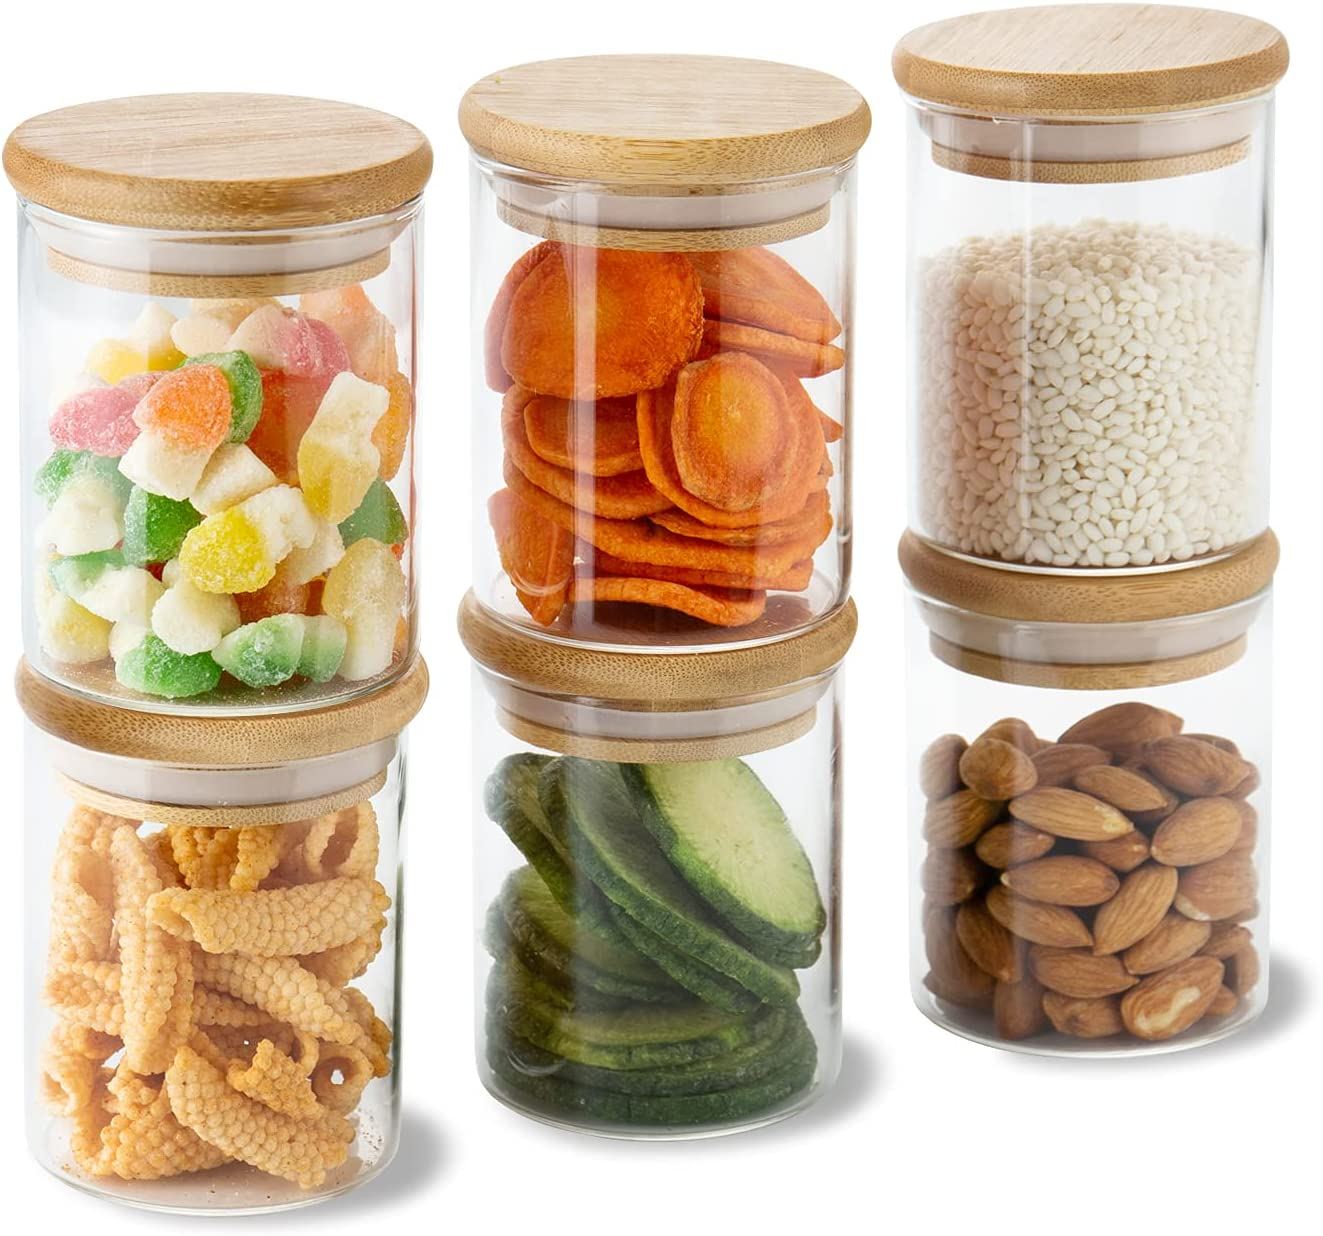 6 Sets 6 Oz Small Clear Glass Storage Canister Holder with Airtight Bamboo Lid, Modern Decorative Mini Container Jar for Coffee, Spice, Candy, Salt, Condiment, Pepper, Sugar, Matcha, Herb